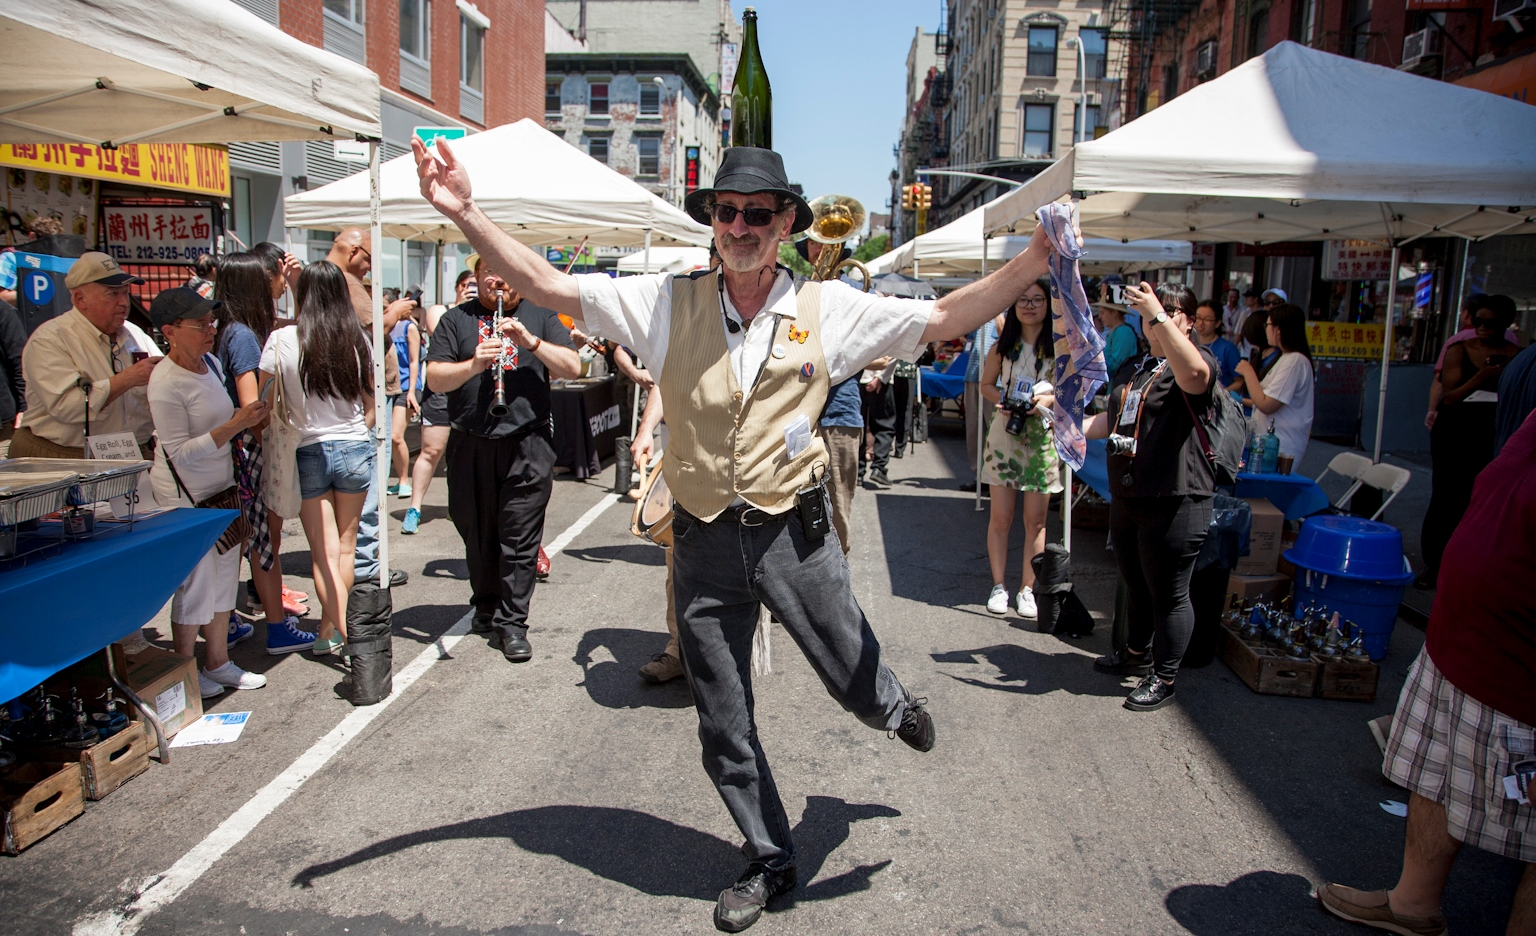 Jewish Bottle Dancer at the Museum's Egg Rolls, Egg Creams & Empanadas Festival